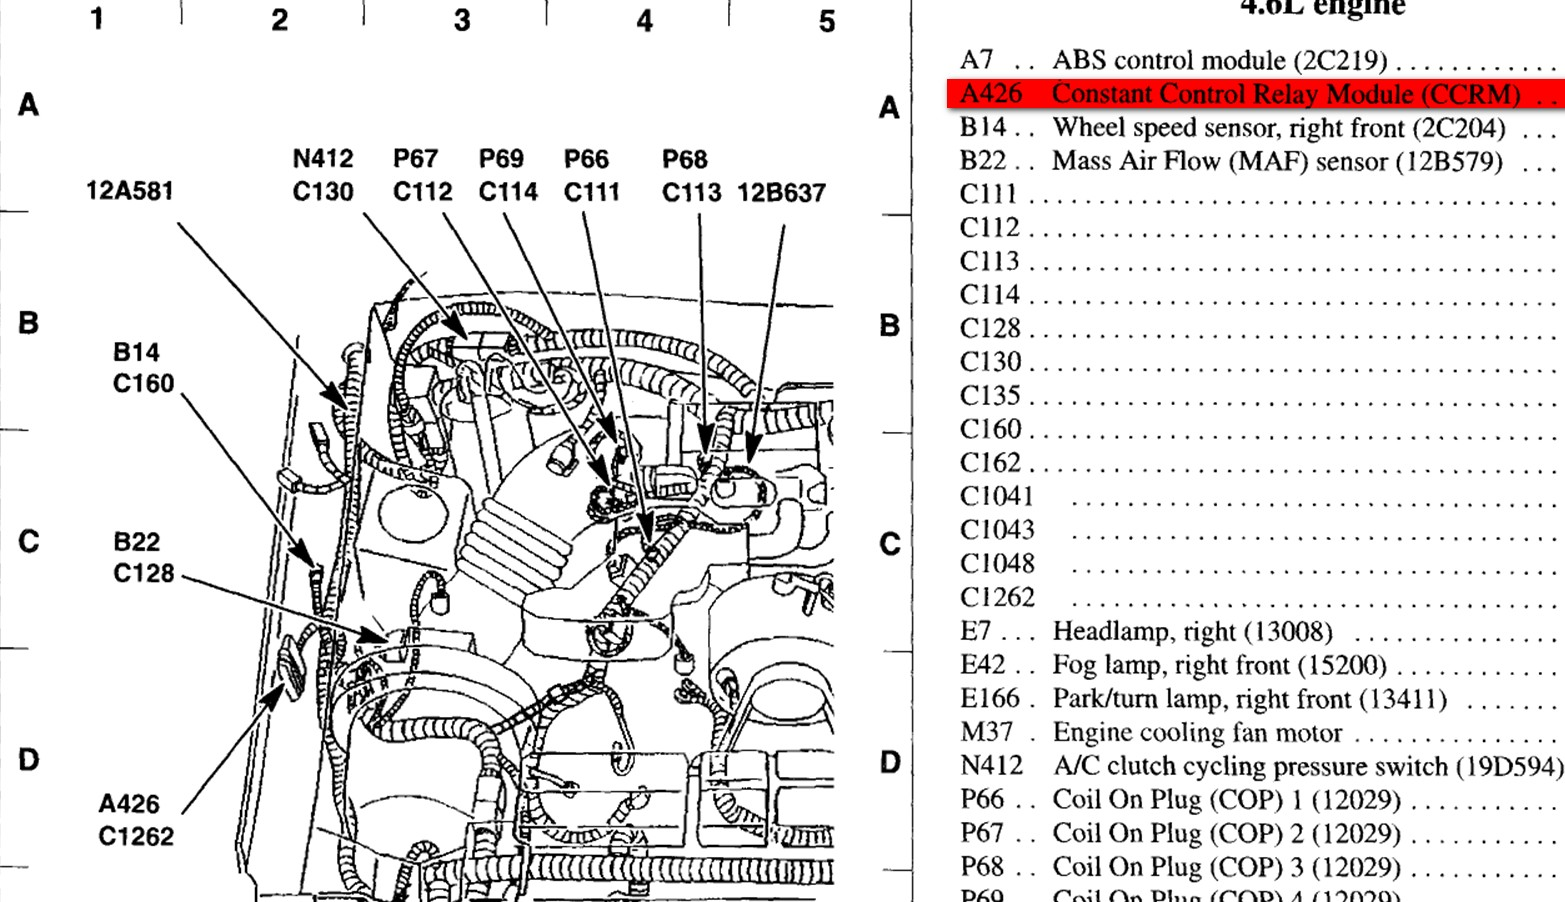 hight resolution of 2002 mustang v8 wiring harness wiring diagrams update2002 mustang gt engine diagram wiring library schema diagram